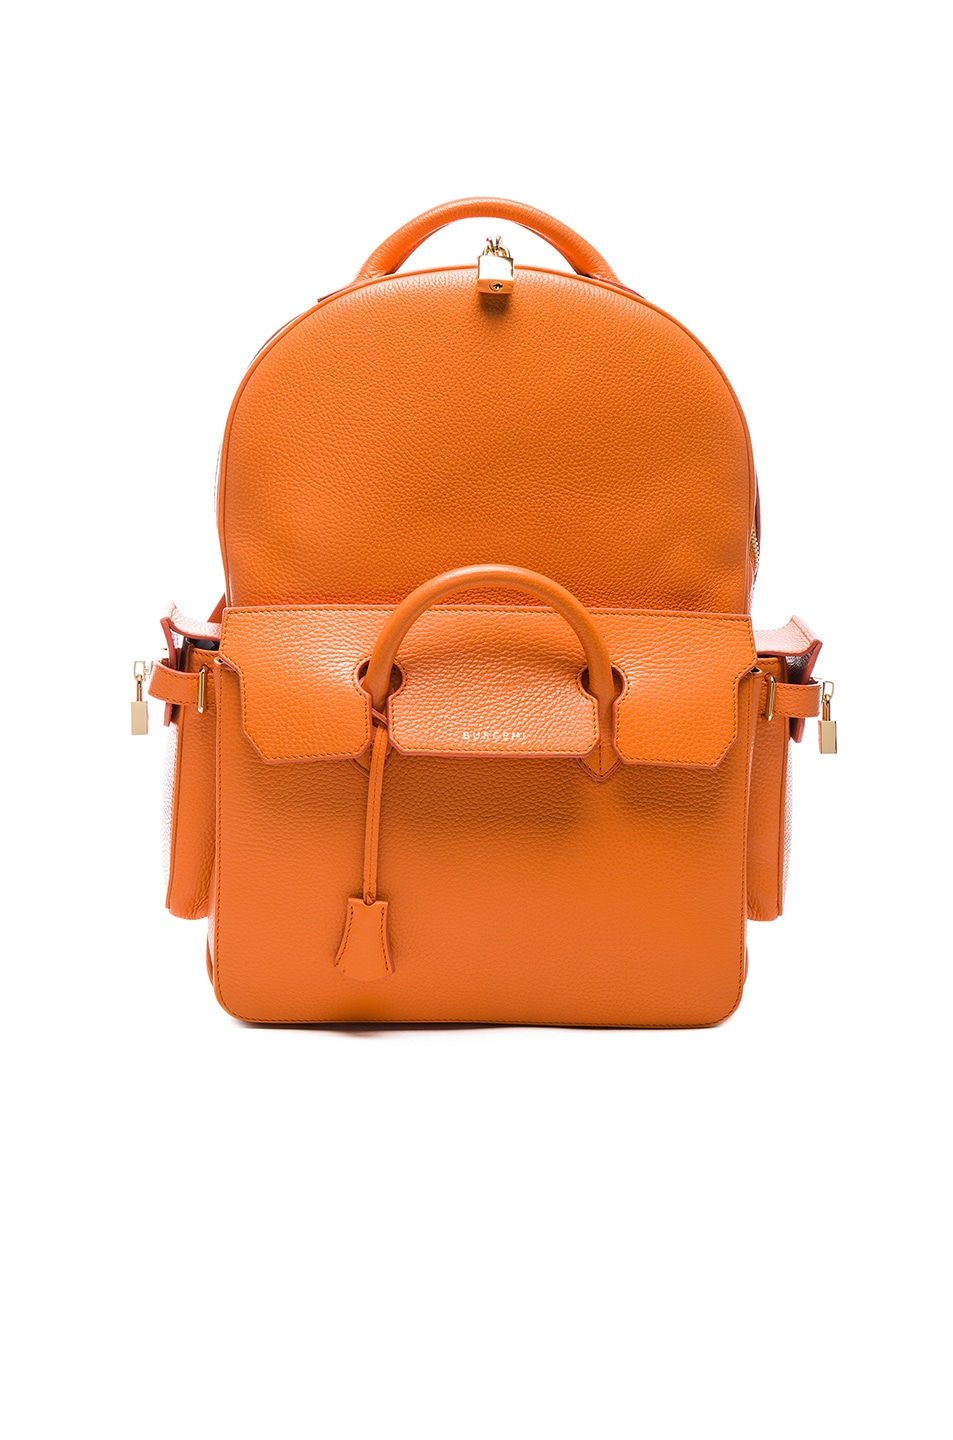 BUSCEMI Padlock backpack Best Cheap Online Quality Outlet Store Eastbay For Sale bOoMe2zyG